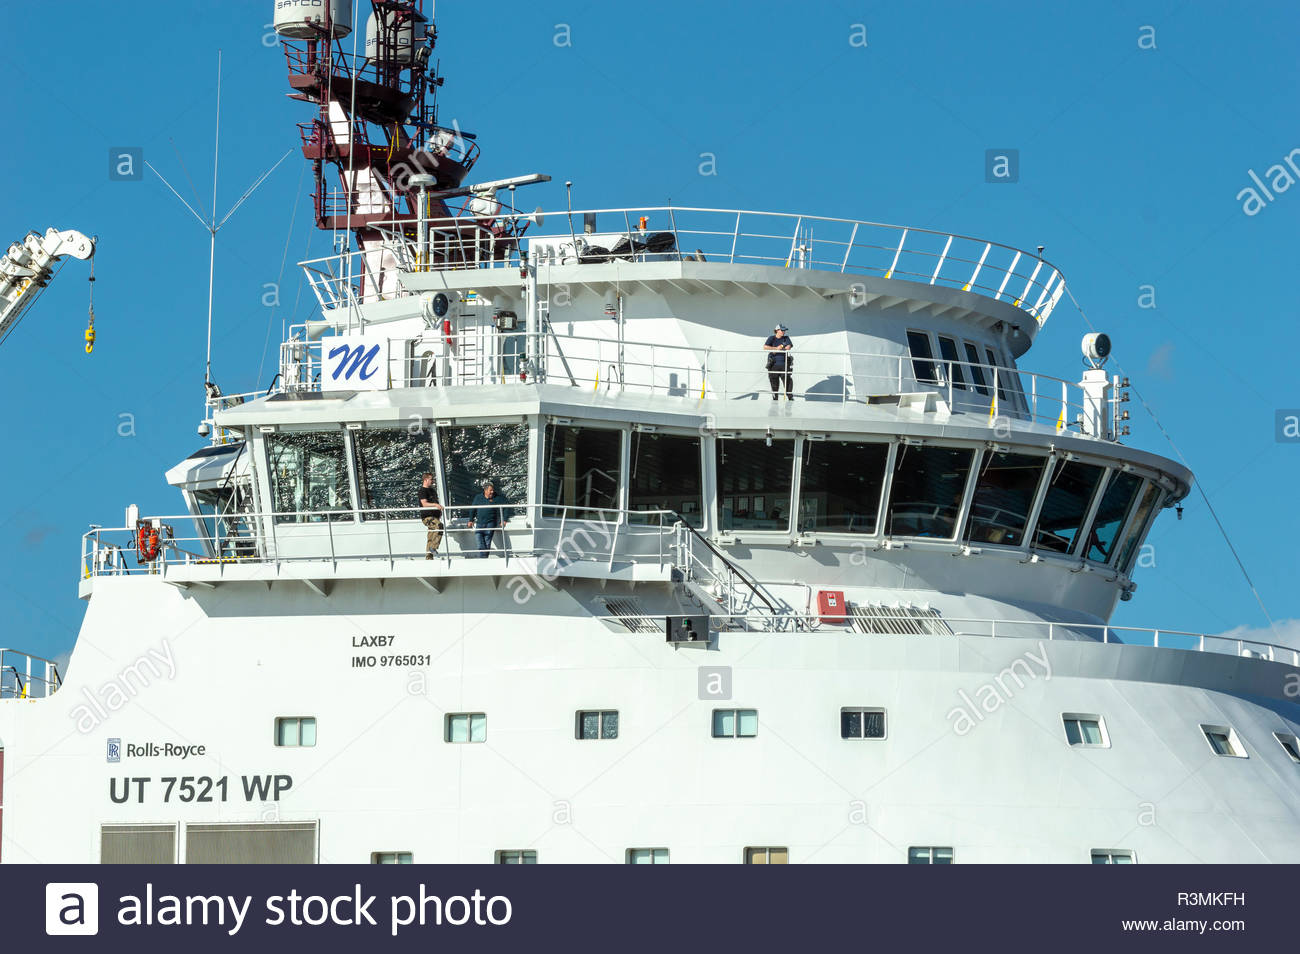 New Bedford, Massachusetts, USA - April 26, 2018: Superstructure of geotechnical drilling vessel Dina Polaris as it passes through hurricane barrier - Stock Image